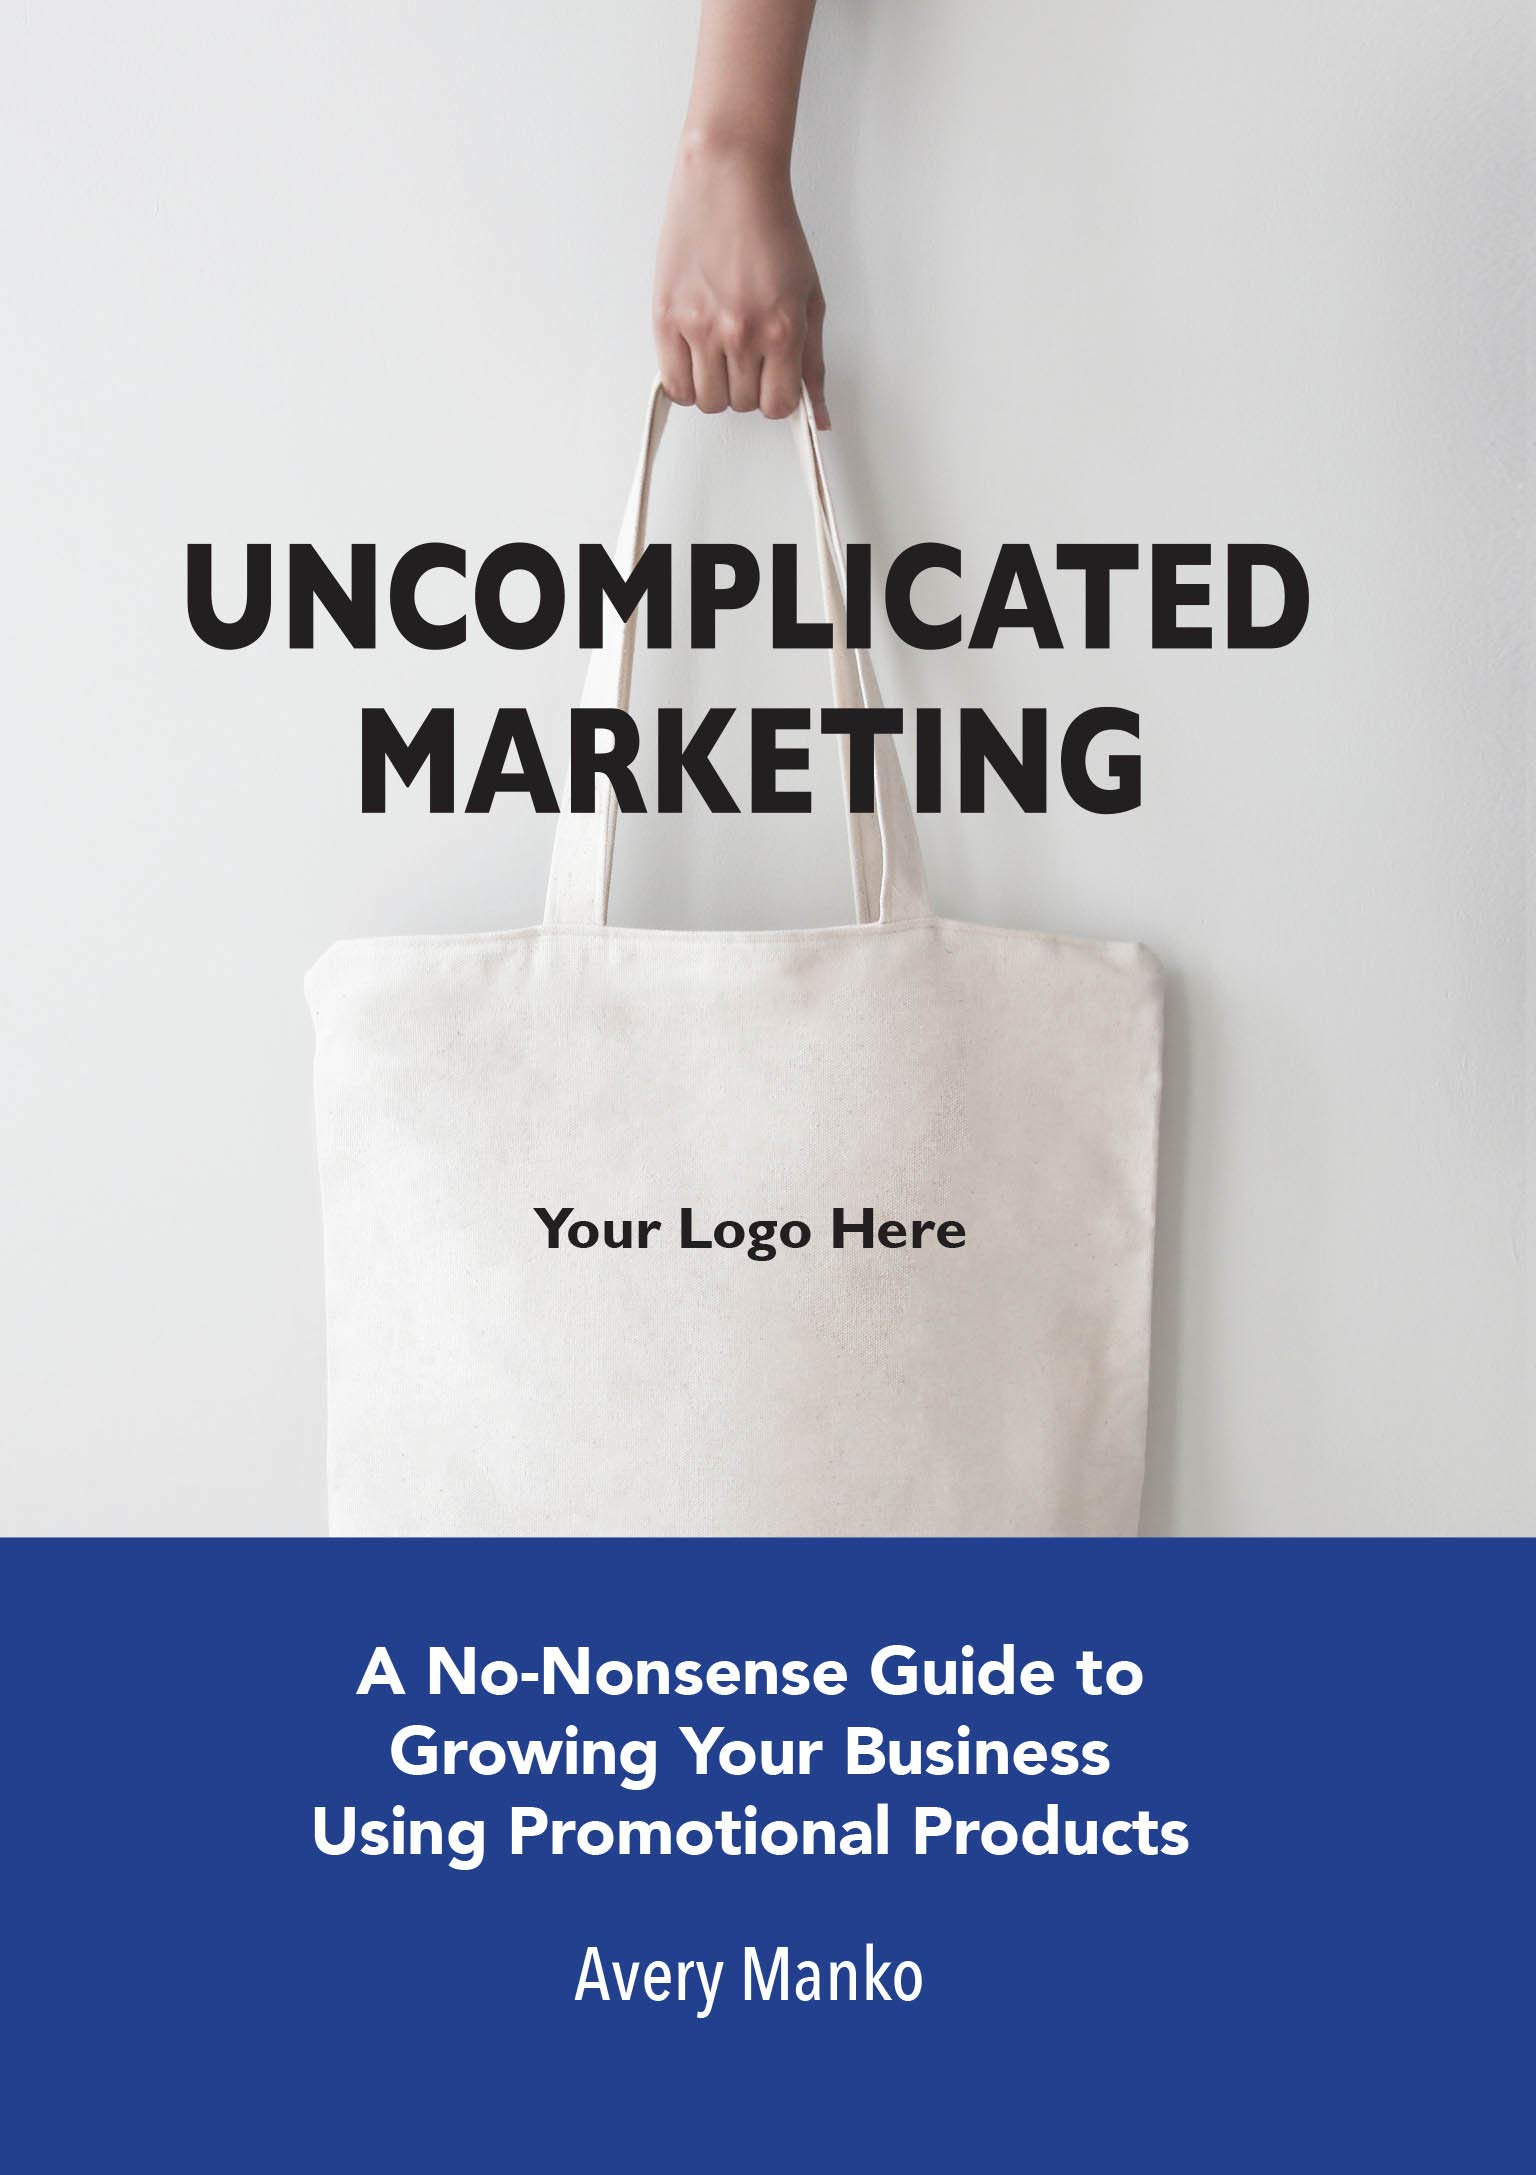 Uncomplicated Marketing: A No-Nonsense Guide to Growing Your Business Using Promotional Products